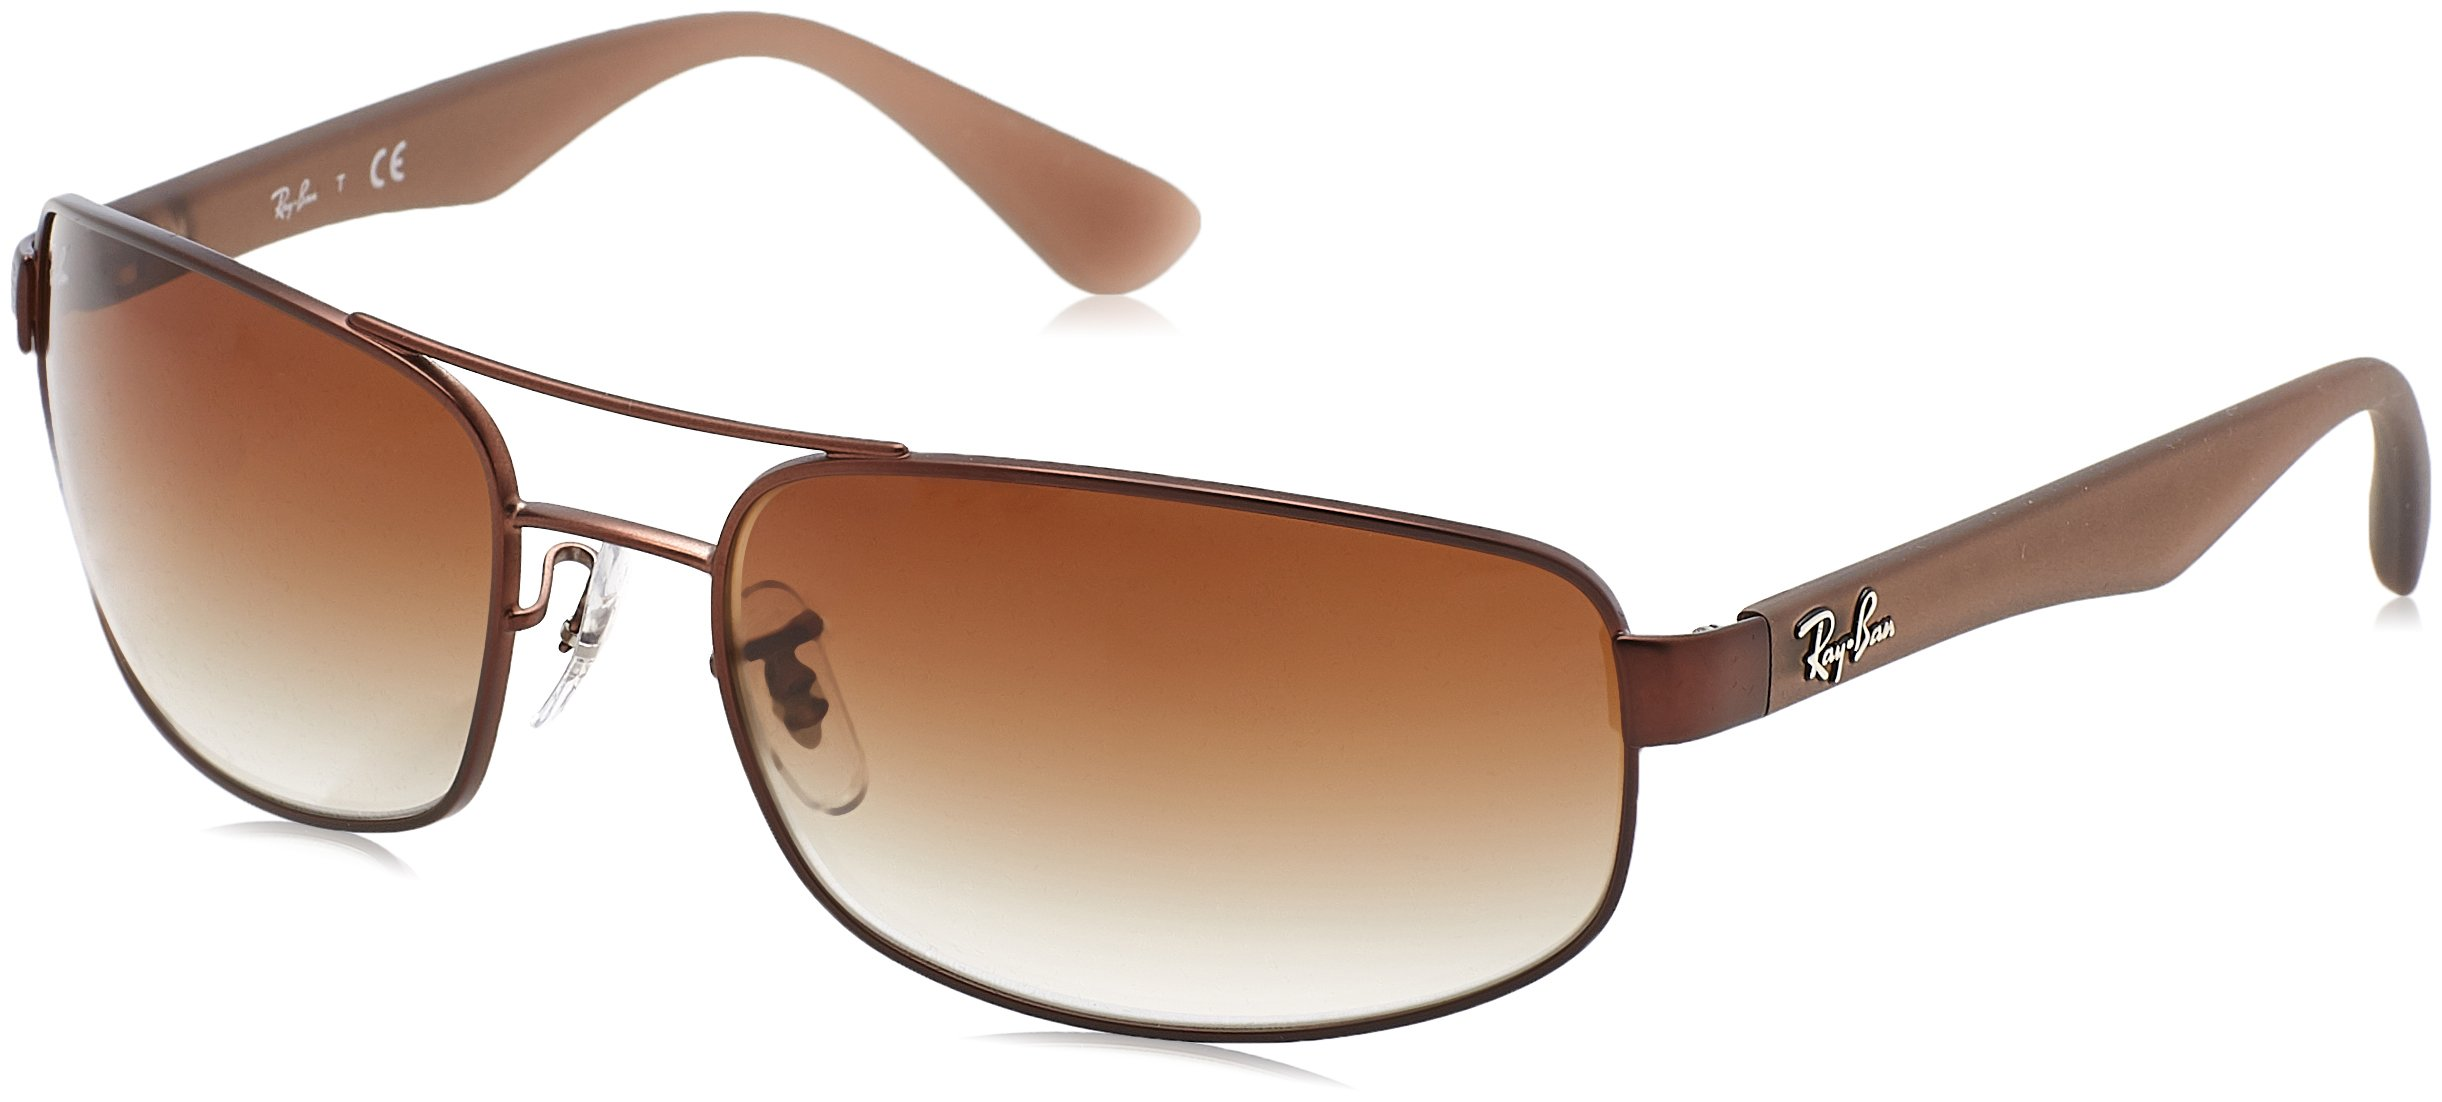 Ray-Ban Men's RB3445 Sunglasses Matte Brown / Brown Gradient 61mm by Ray-Ban